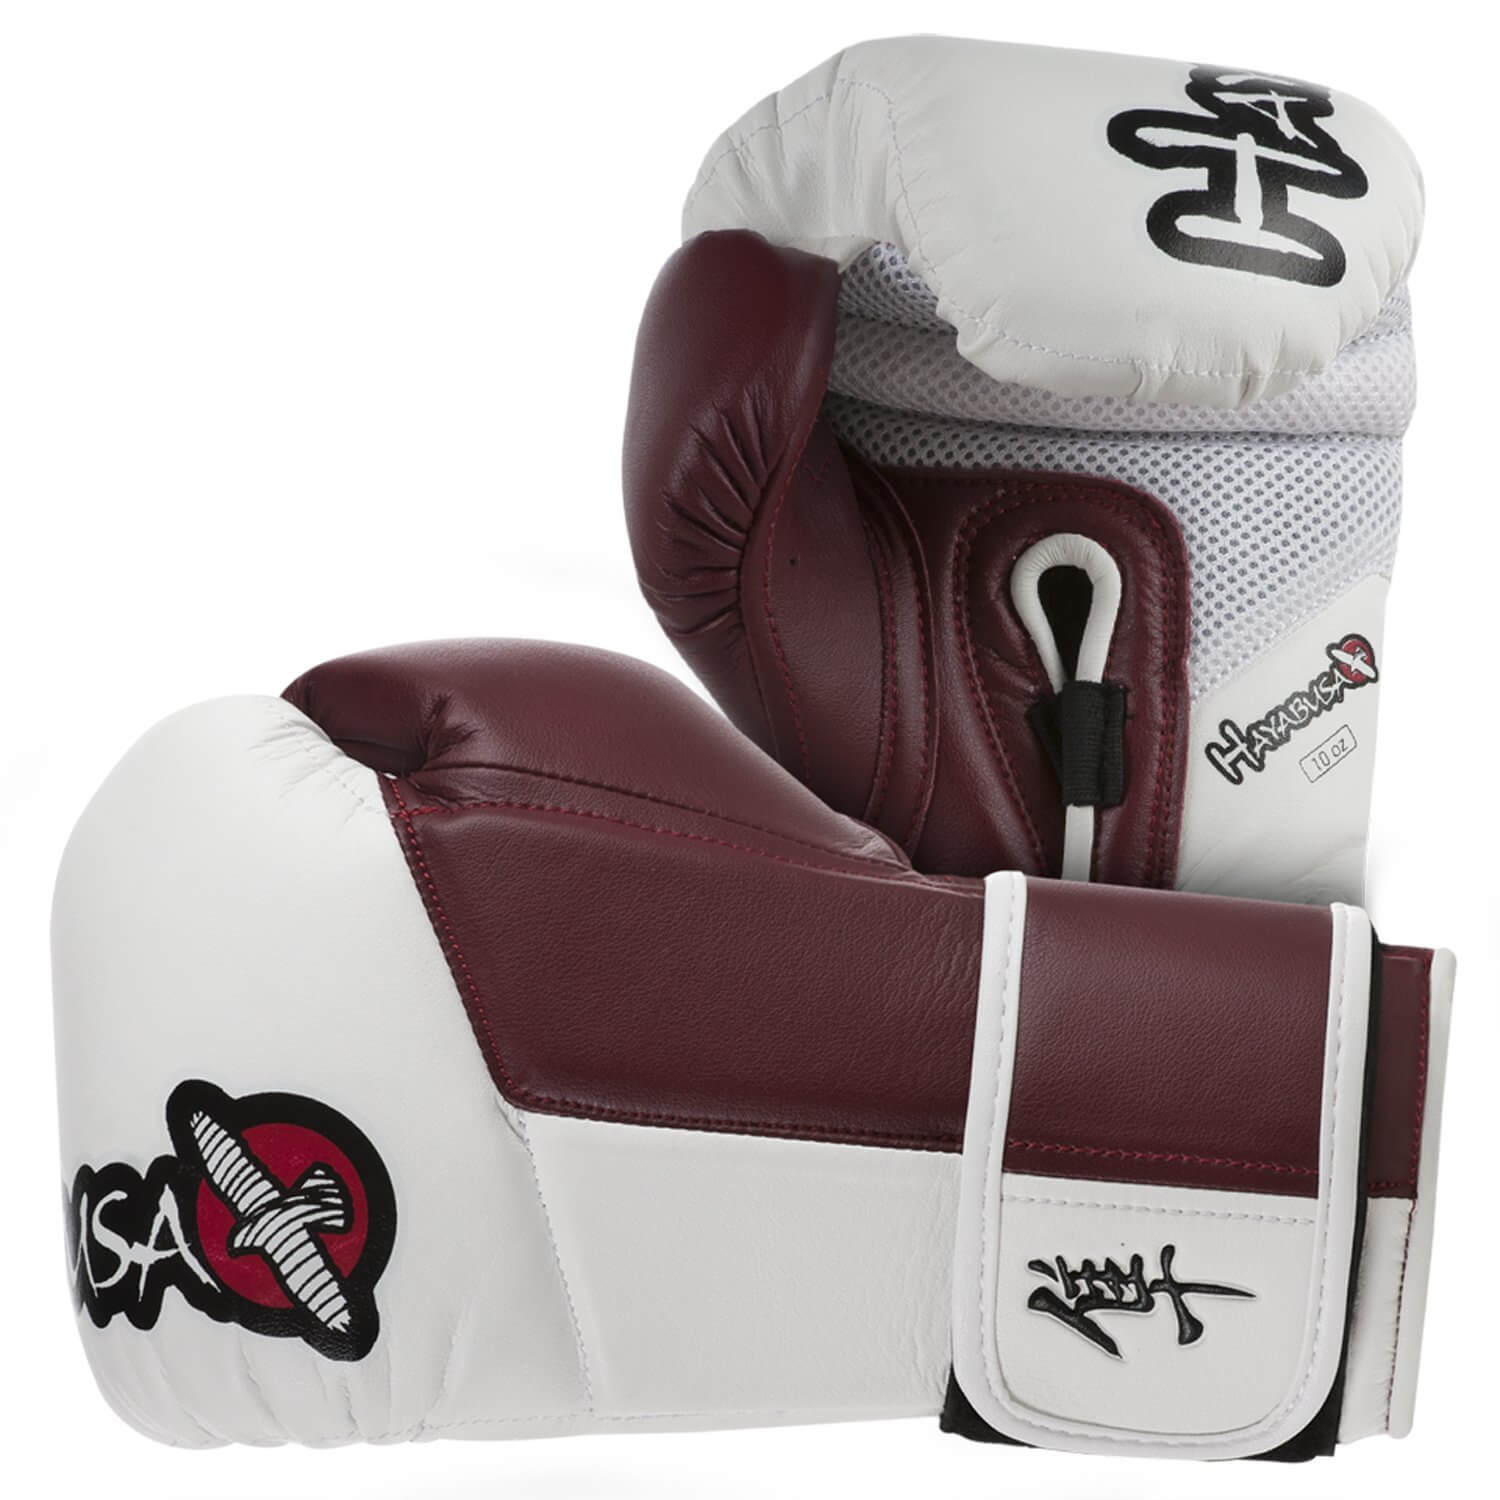 Heavy Bag Gloves Between 100$ – $200